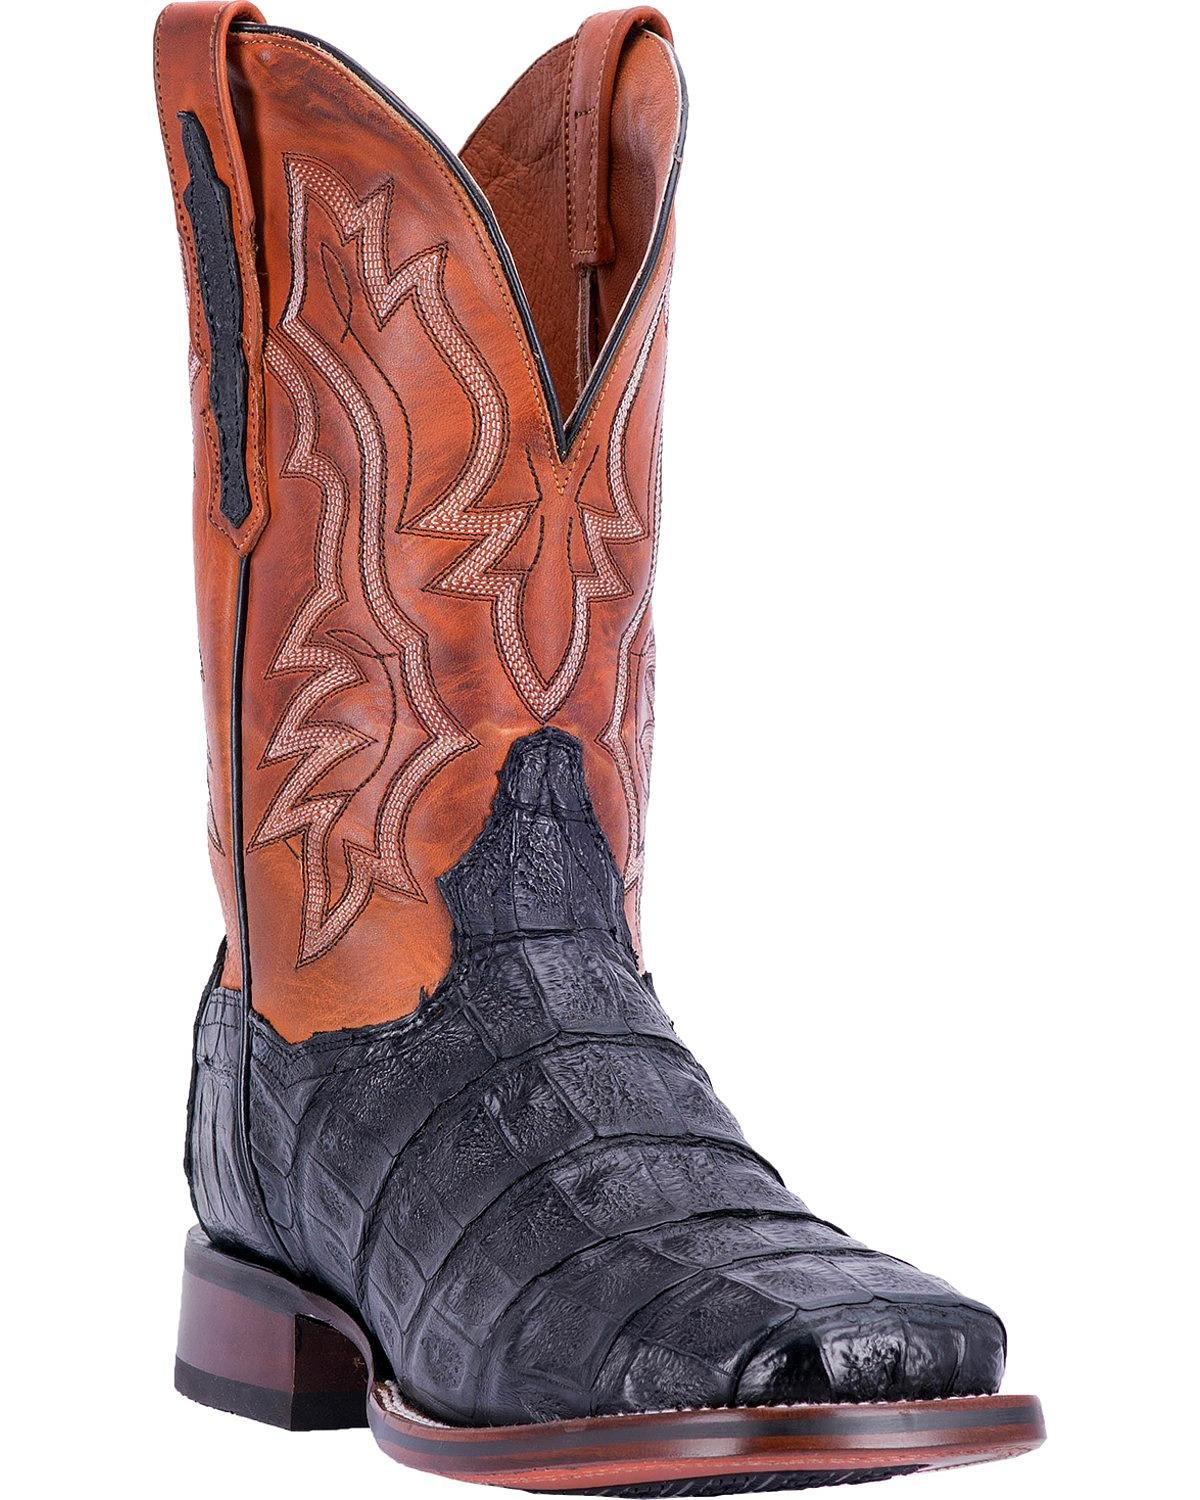 Dan Post Men's Bishop Caiman Tail Cowboy Certified Boot Square Toe Black 9.5 D